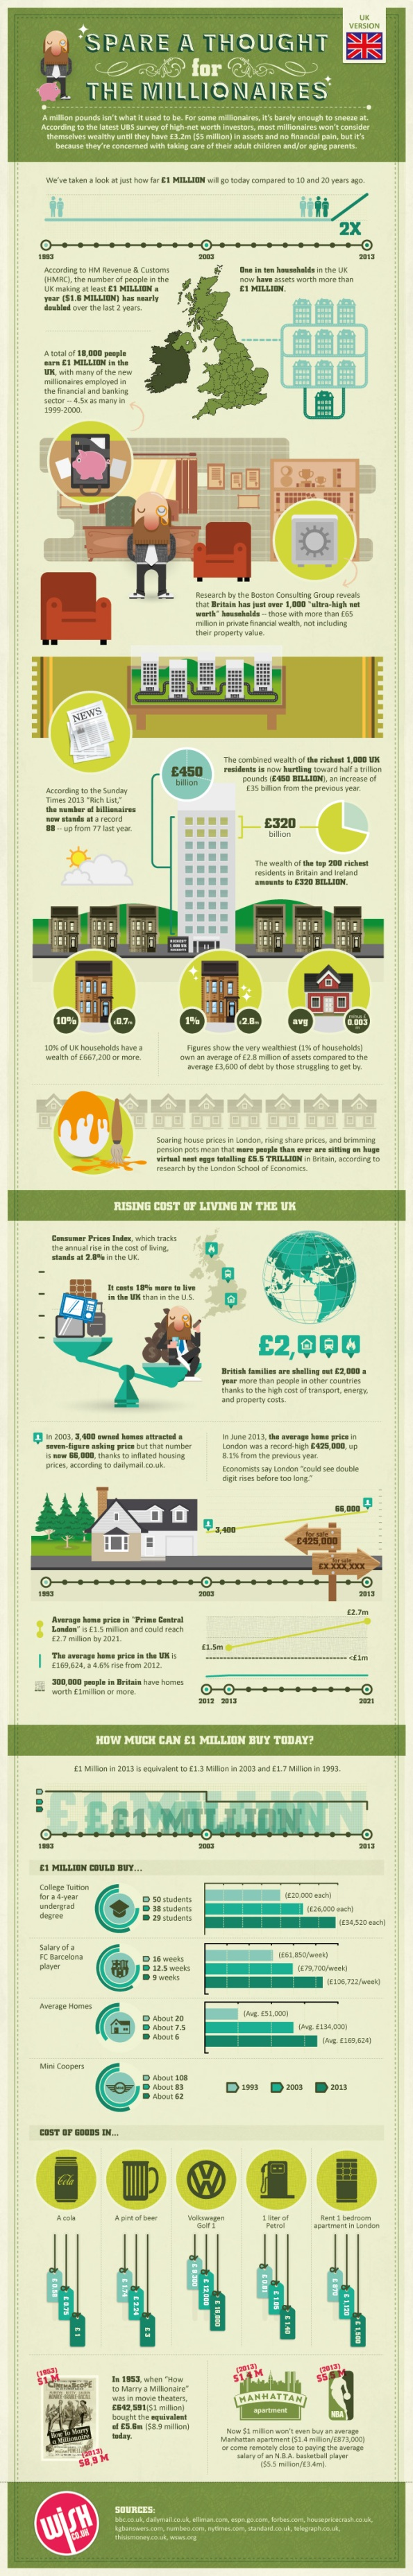 Cost of Living in UK 2013-Infographic